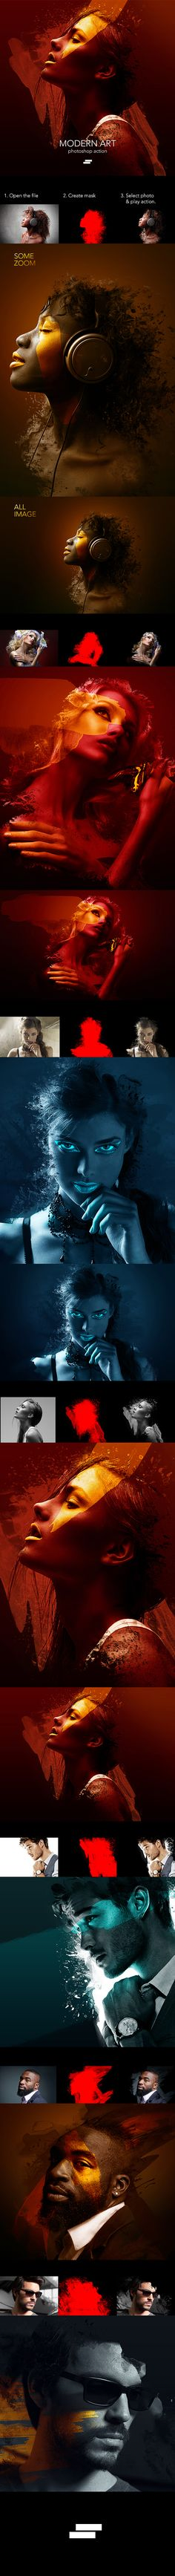 Modern Art Photoshop Action #photoeffect Download: http://graphicriver.net/item/modern-art-photoshop-action/13590241?ref=ksioks